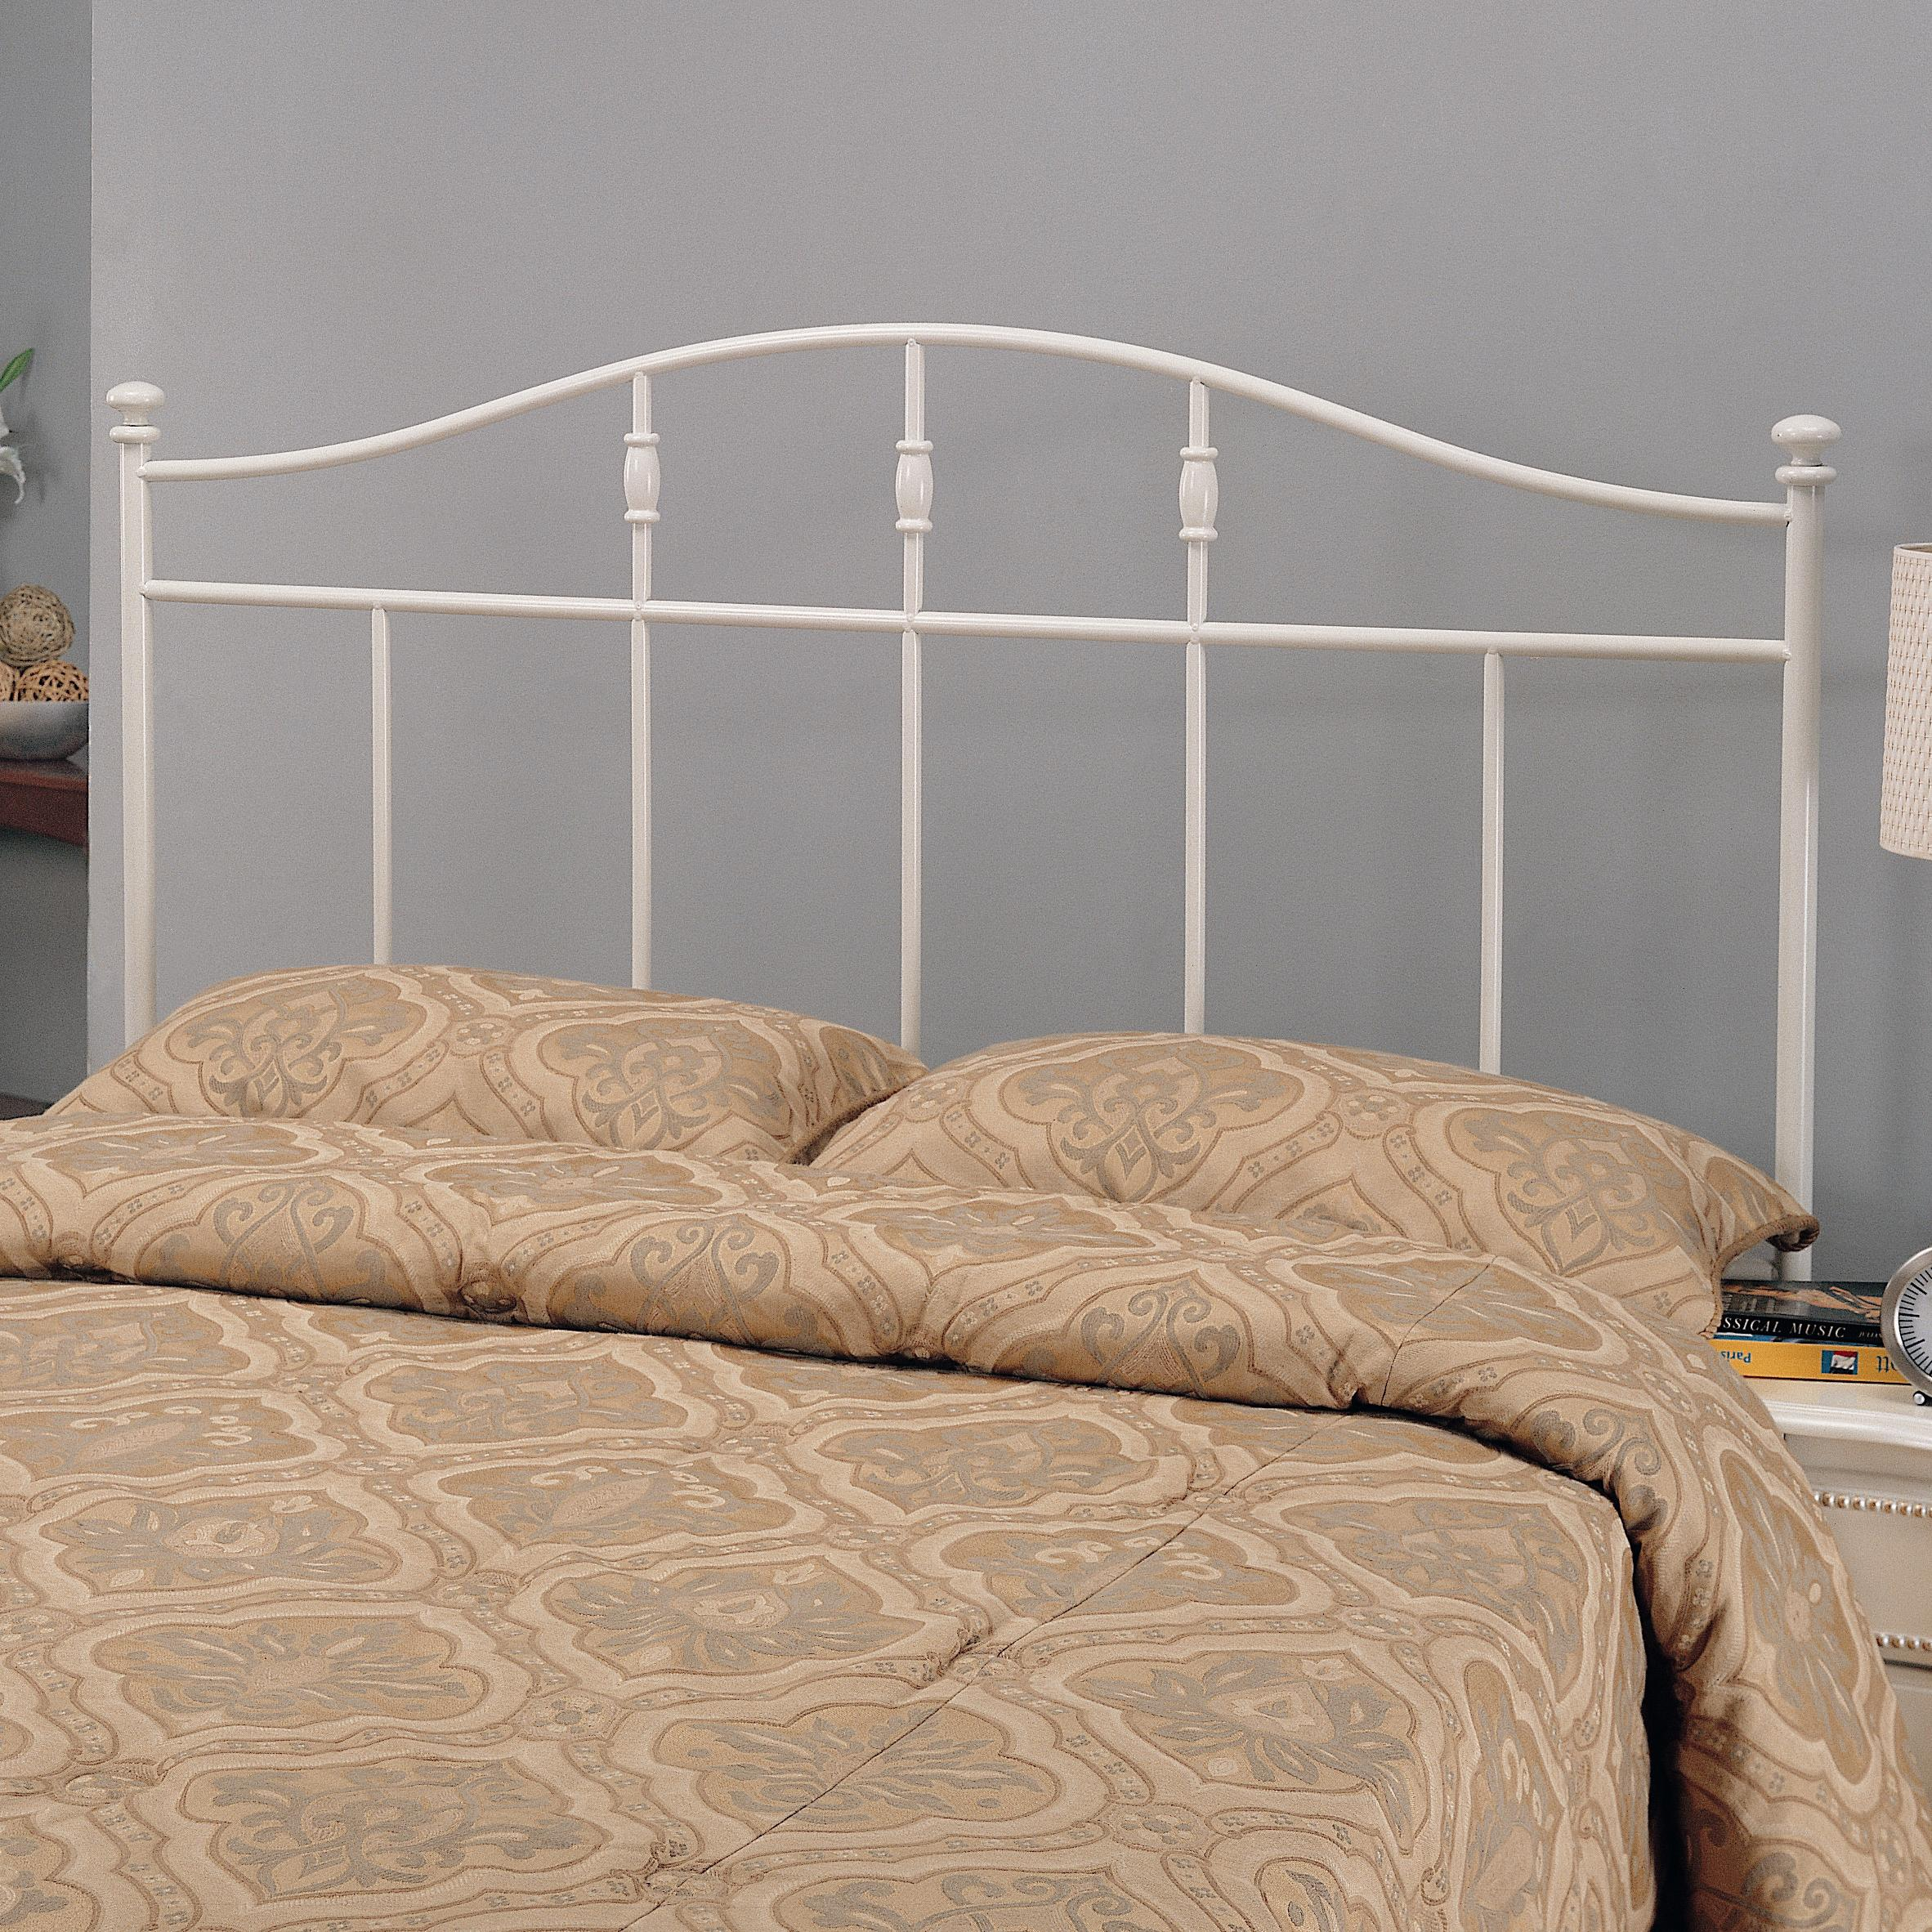 coaster iron beds and headboards 300183qf full queen cottage white metal headboard del sol. Black Bedroom Furniture Sets. Home Design Ideas